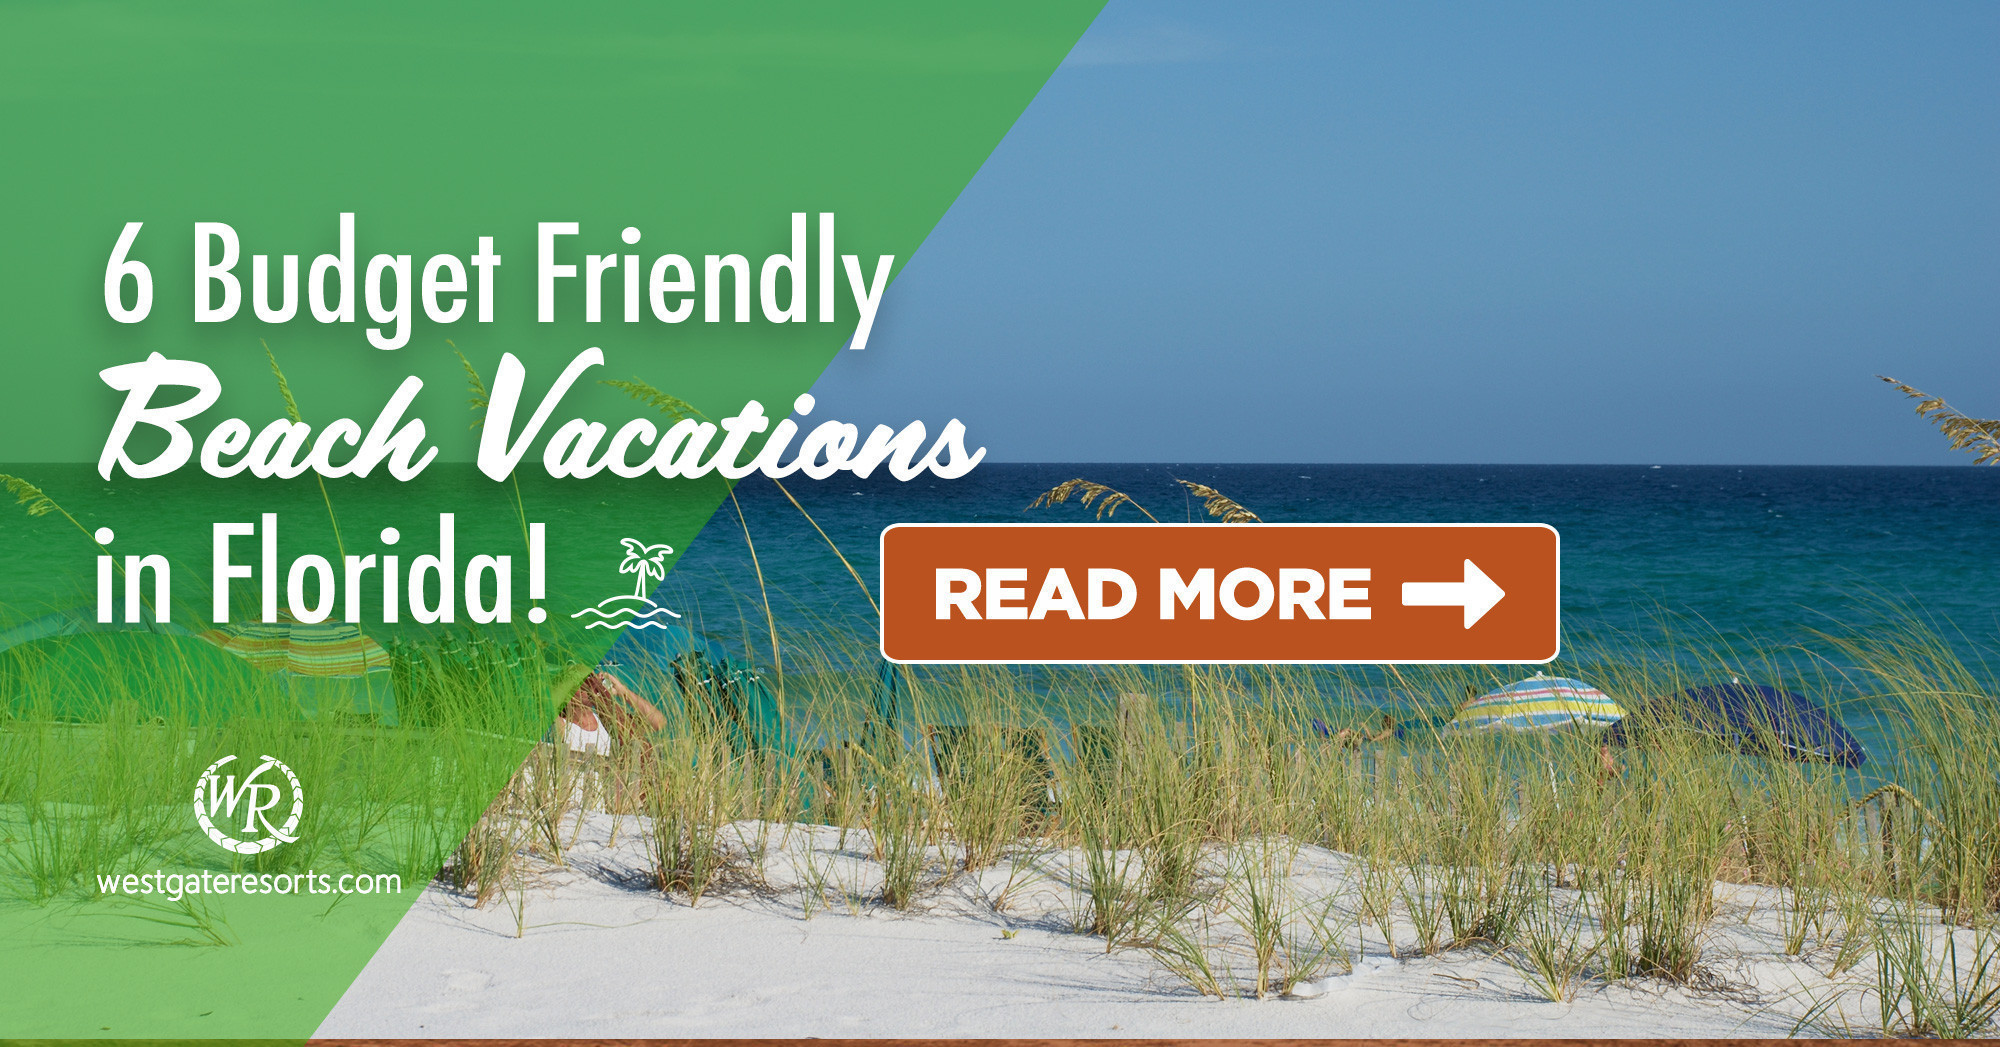 6 Budget Friendly Beach Vacations in Florida